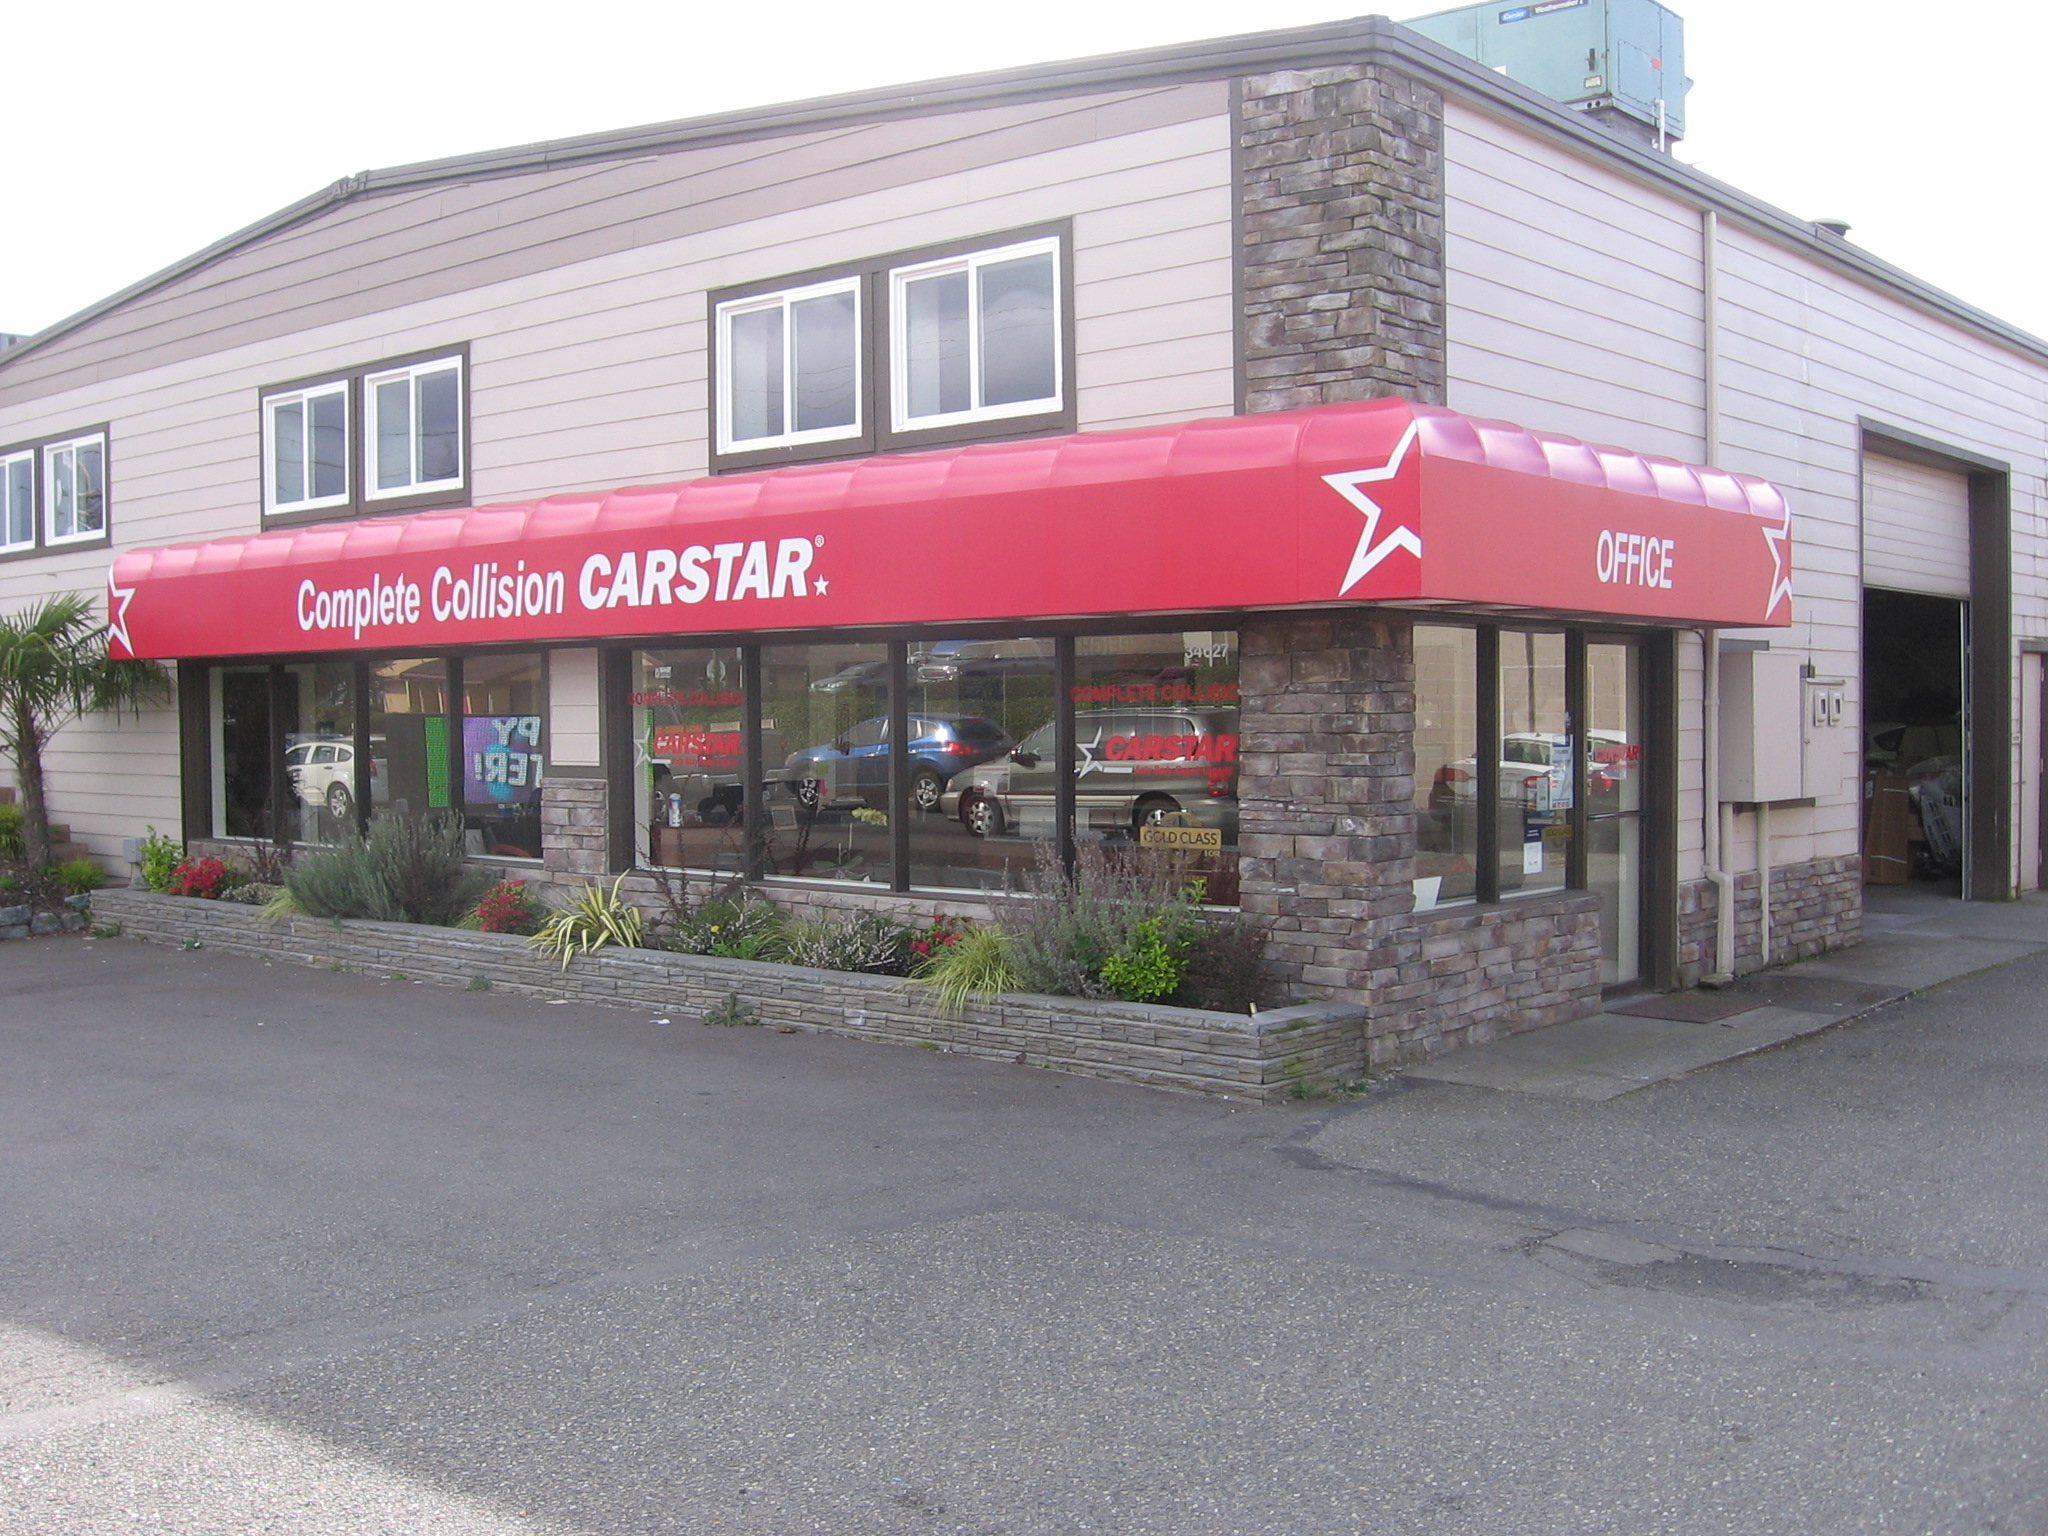 Complete Collision CARSTAR: Exterior